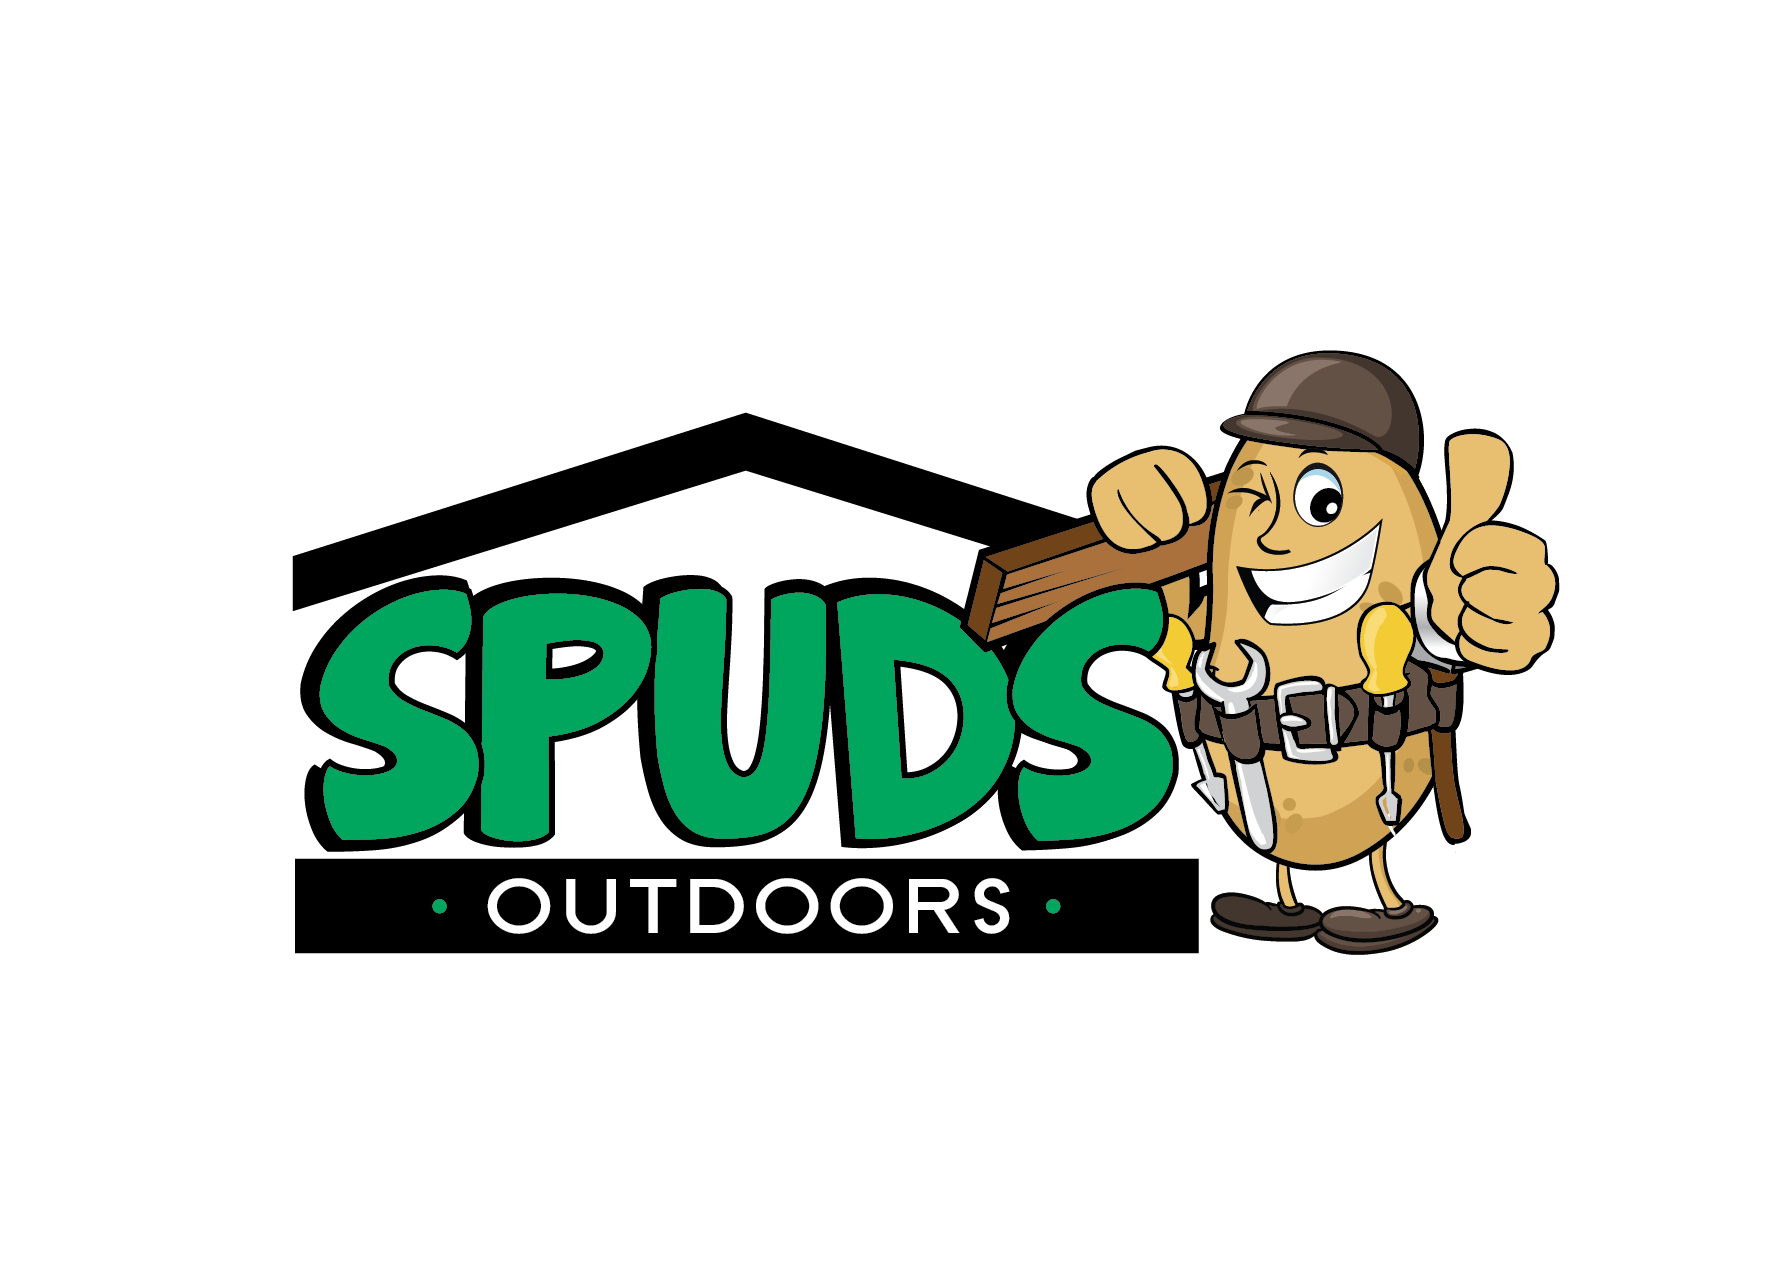 New logo wanted for Spuds Outdoors